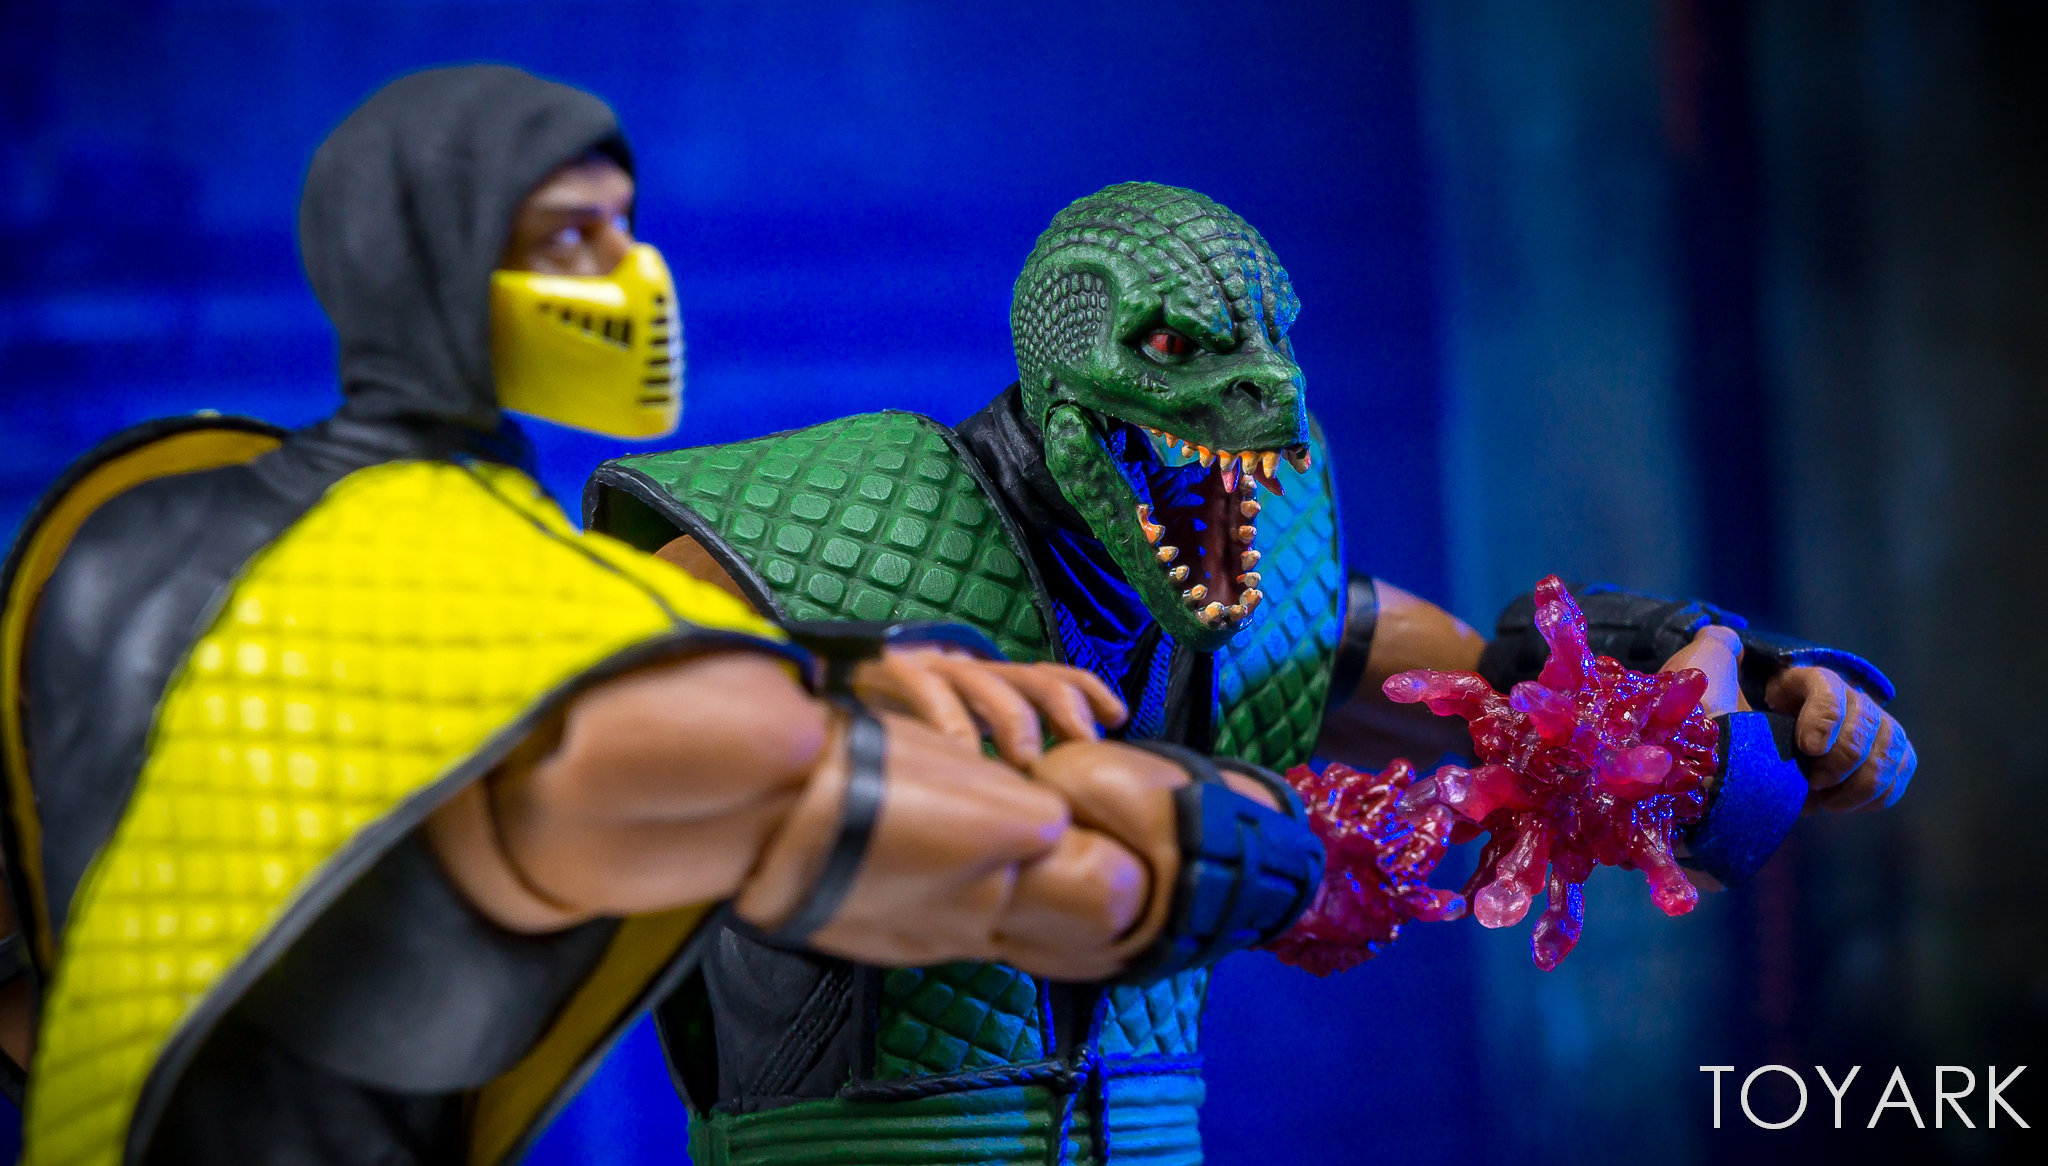 http://news.toyark.com/wp-content/uploads/sites/4/2018/02/Storm-Mortal-Kombat-Reptile-057.jpg